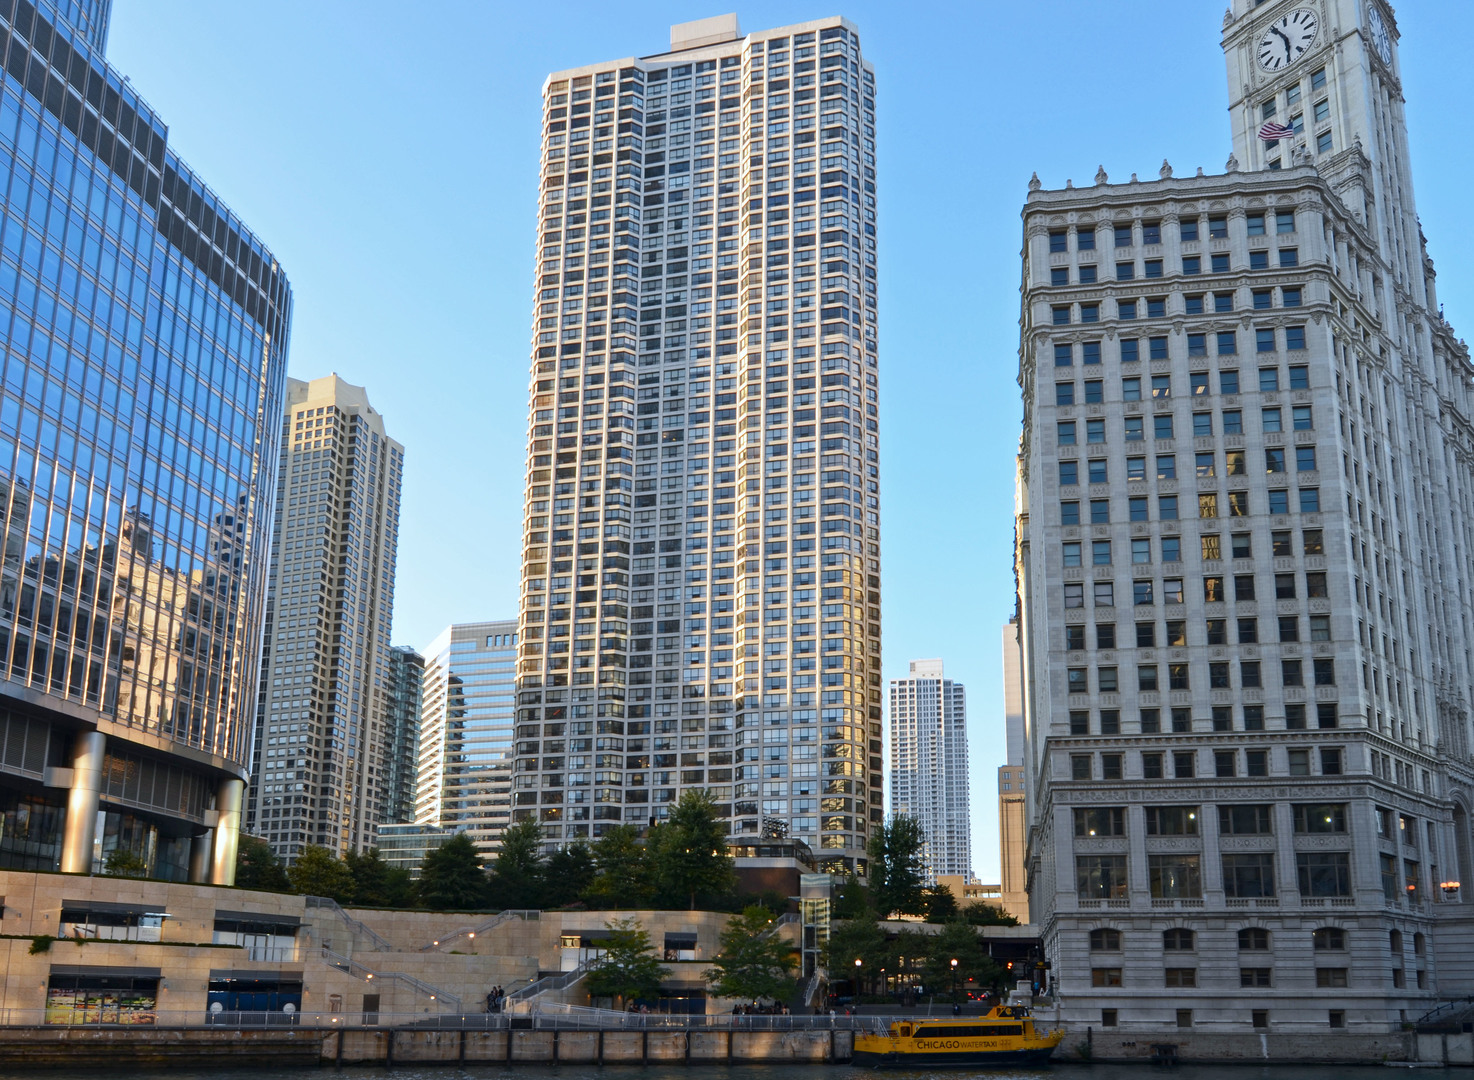 405 NORTH WABASH AVENUE #3106, CHICAGO, IL 60611